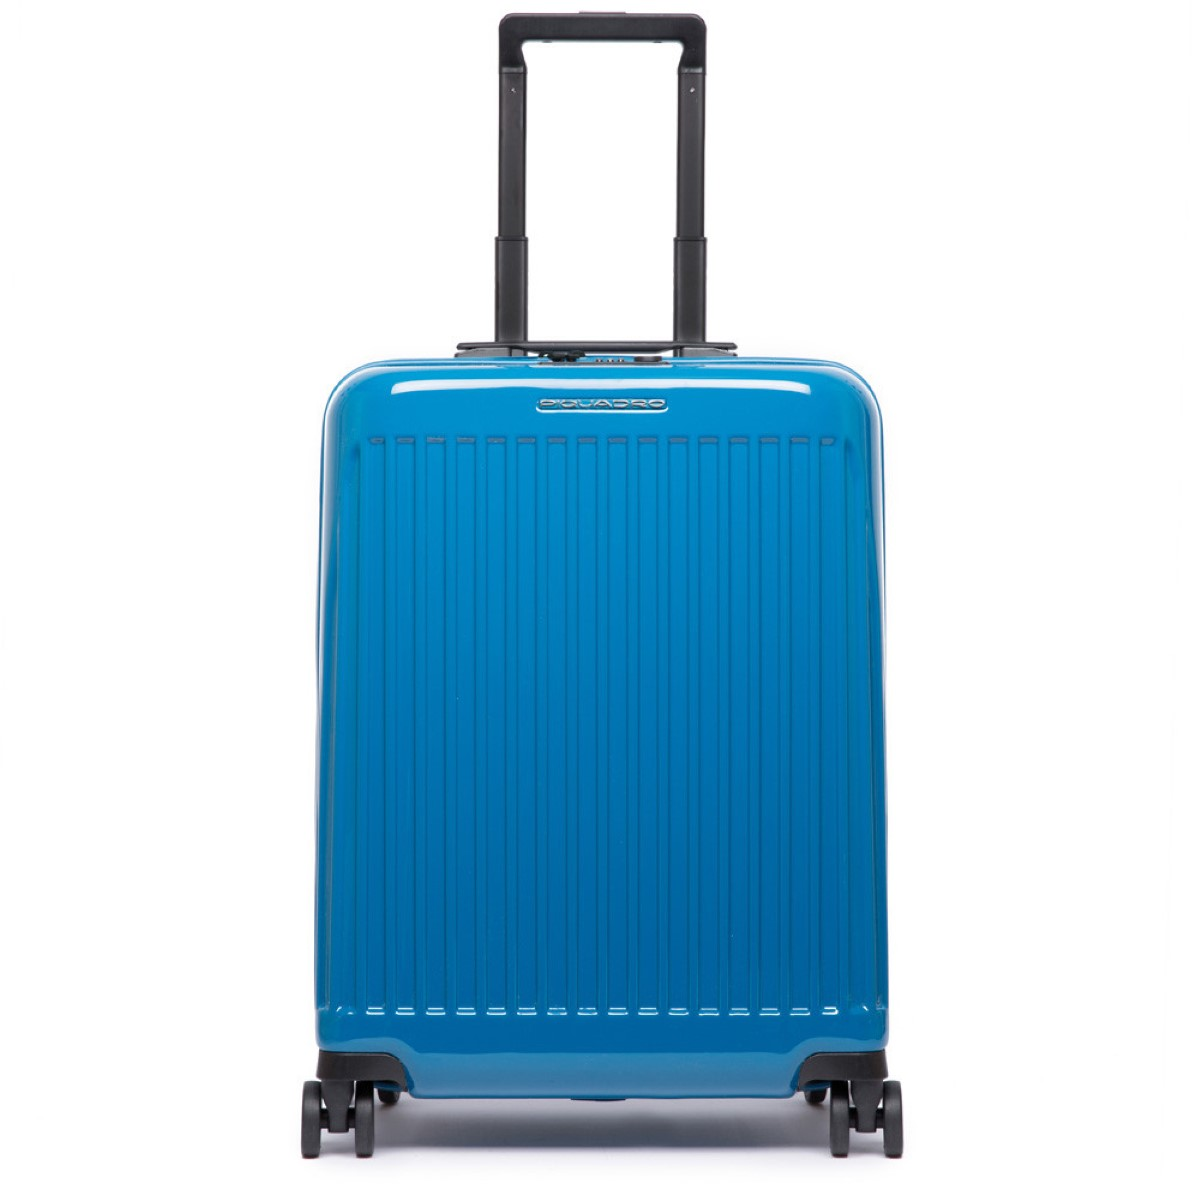 TROLLEY CABINA RIGIDO ULTRA SLIM A 4 RUOTE